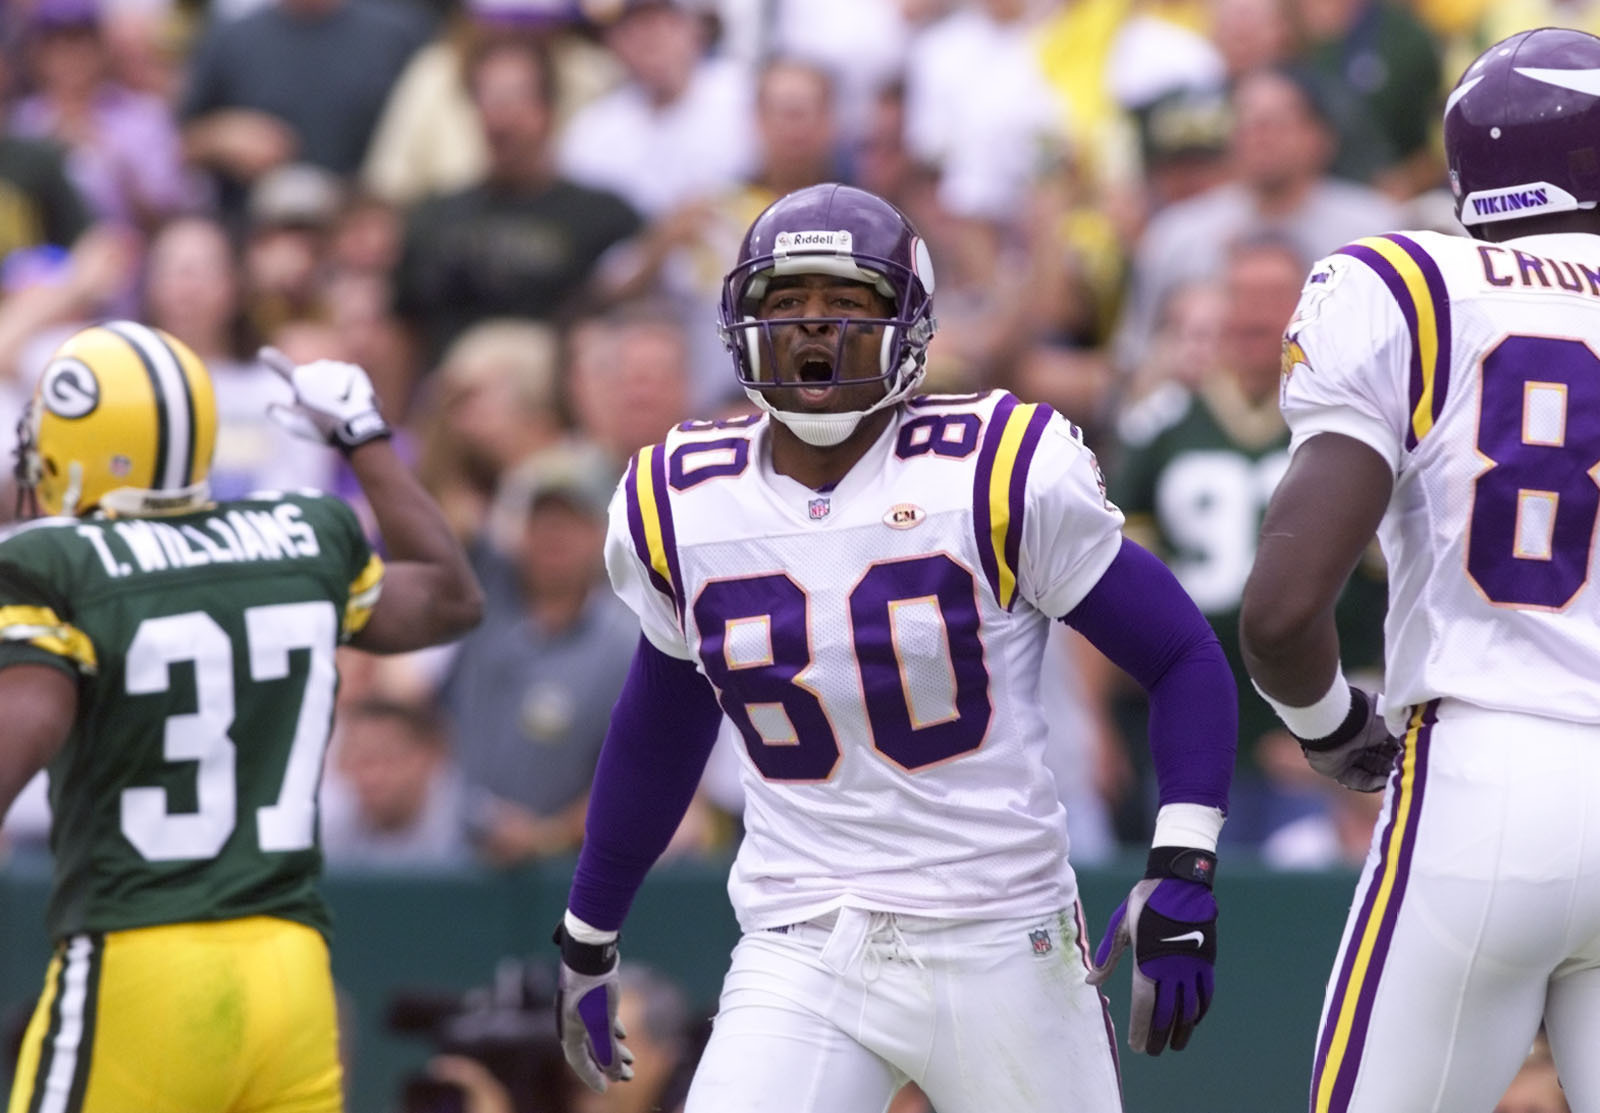 Minnesota Vikings vs green Bay Packers Sept. 26, 1999 — Minnesota Vikings wide receiver Chris Carter lets his emtions show during the 1st quarter of the Packer Viking matchup Sunday at Lambeau Field in Green ay WI. The Vikings lost the game when the Pack